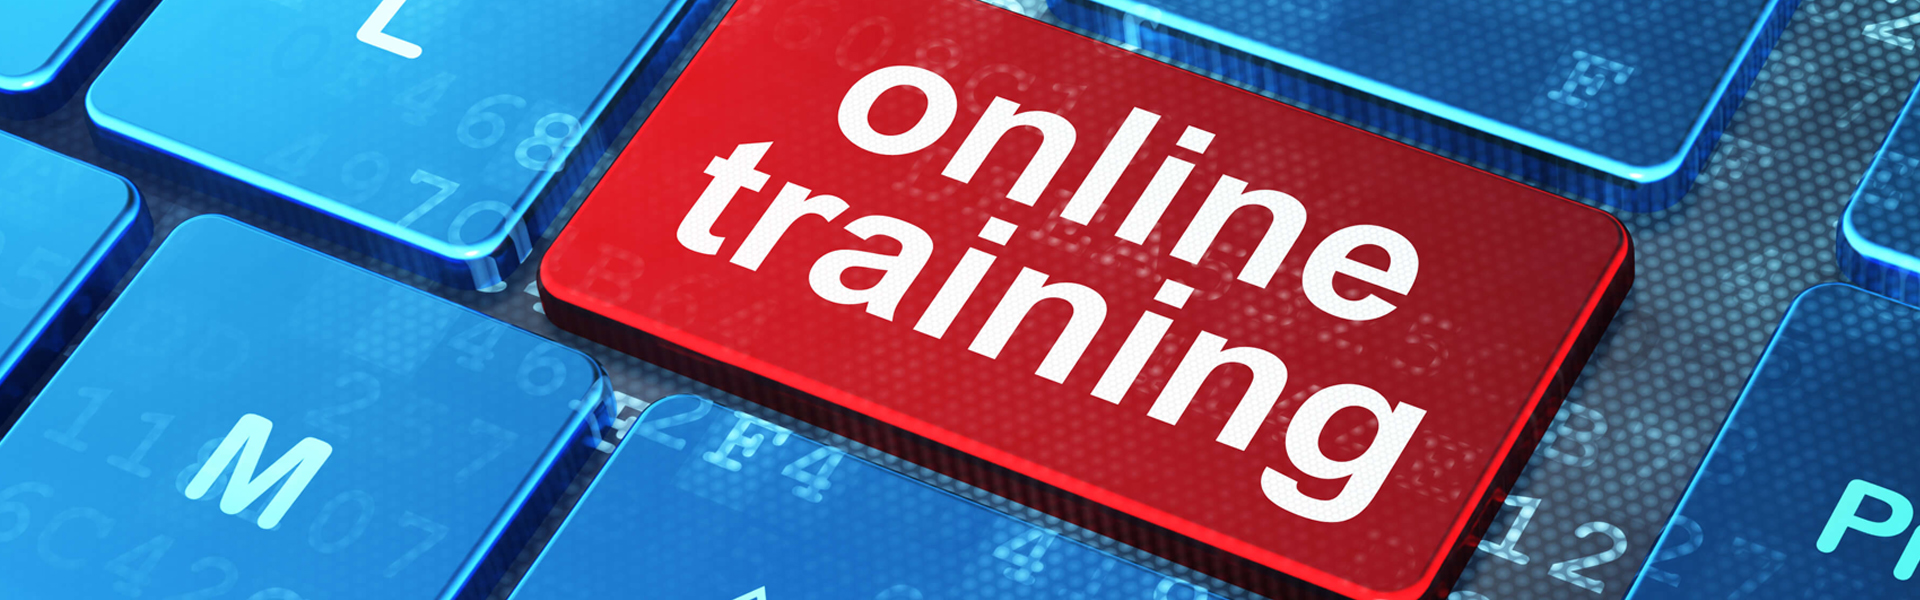 Best Training Institute, Corporate Trainings, LAMP, PHP, Open Sourec Training, Java, Angular 2, 4, 5, 6, 7, Workshops, Real Time Projects, Training in Hyderabad, India,